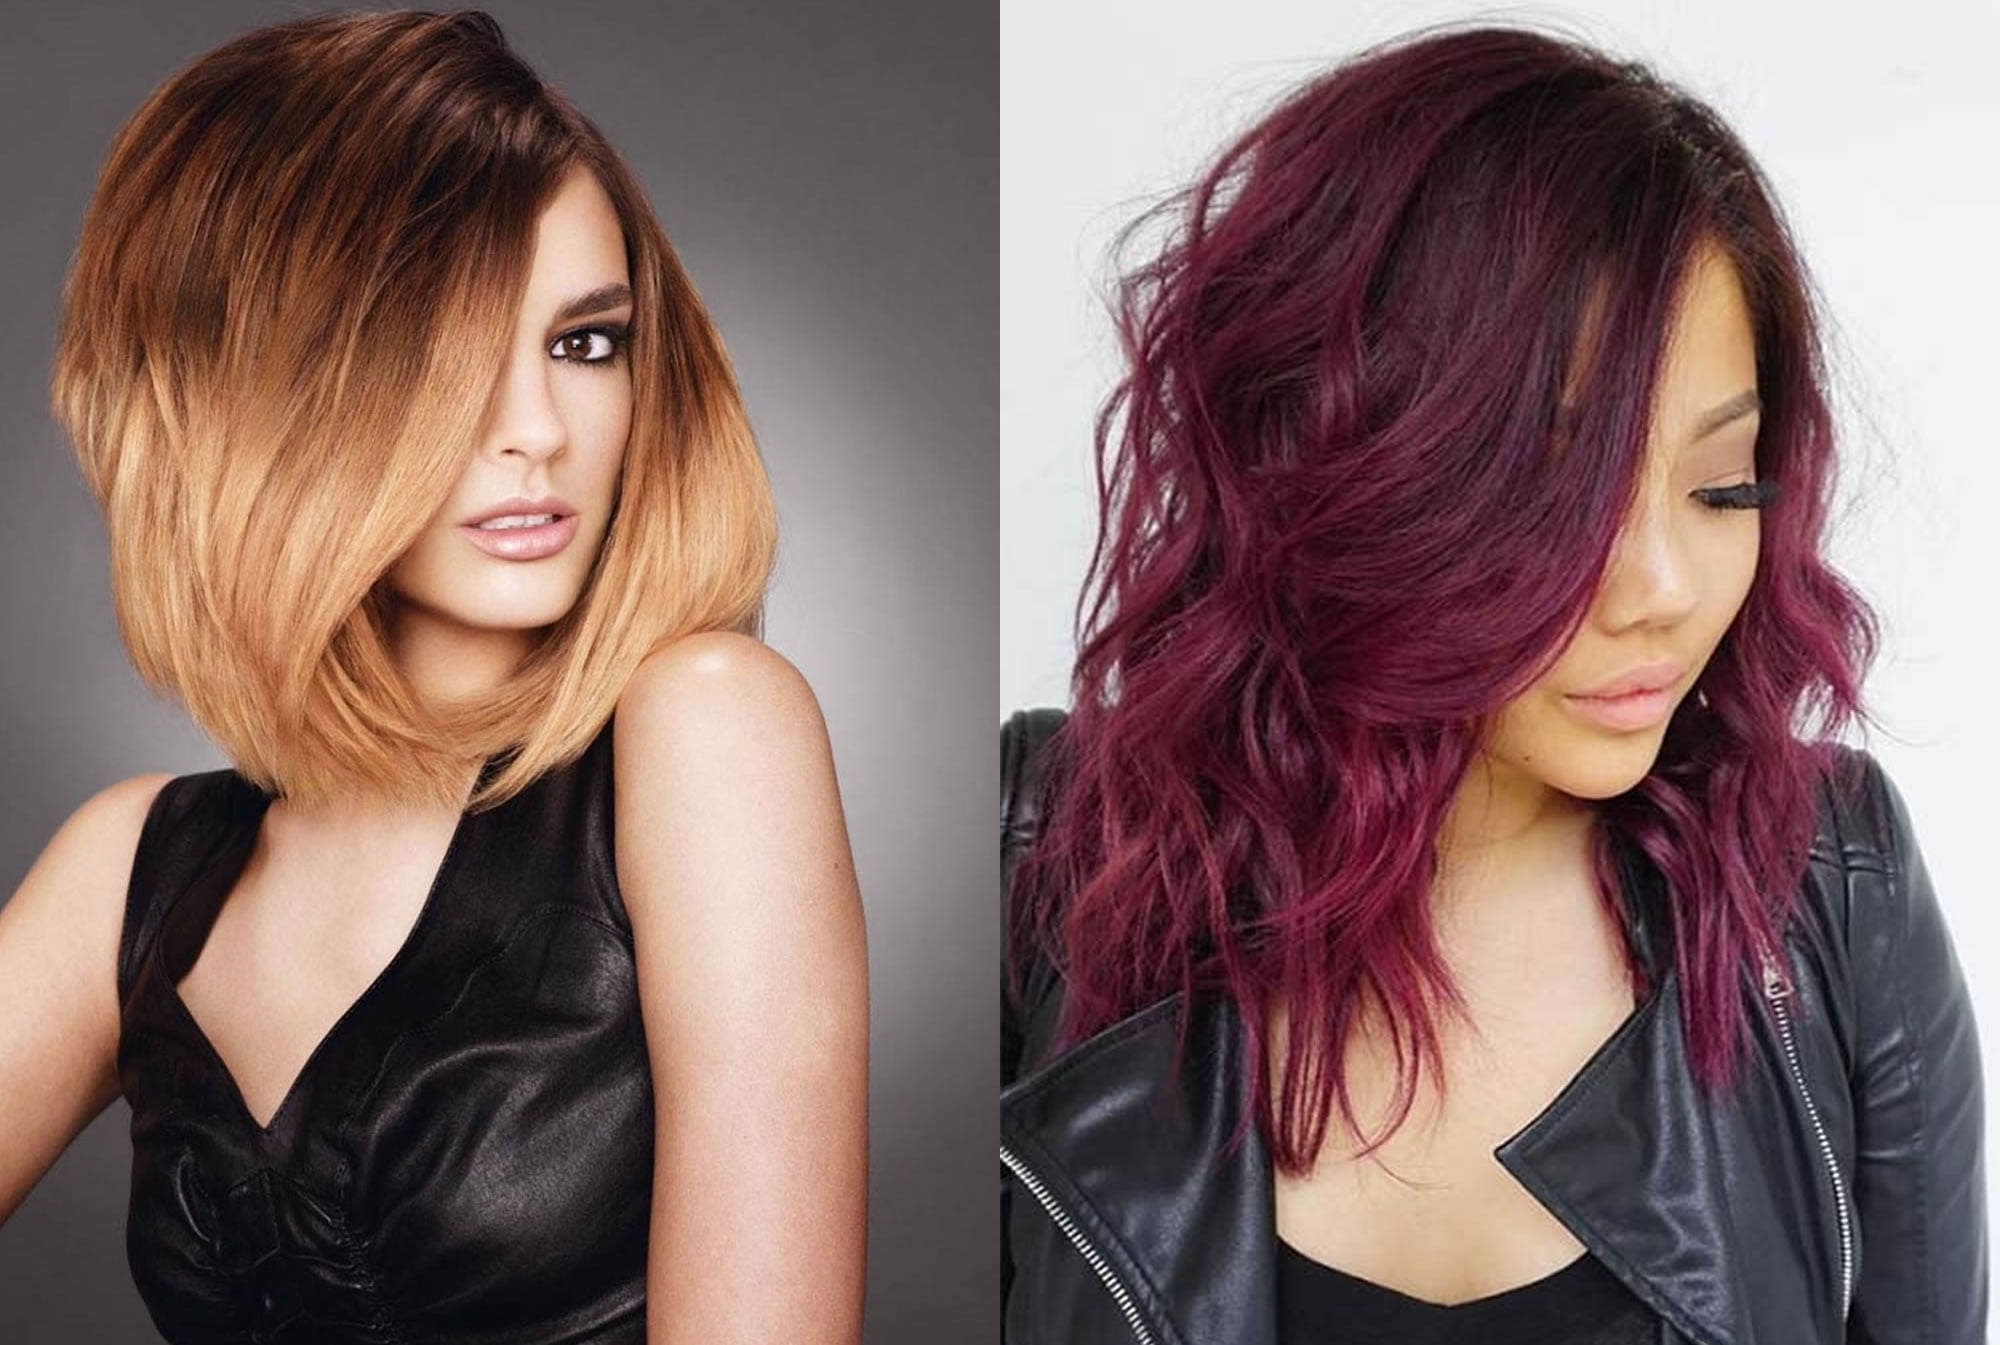 Must Try Ideas For Hairstyles 2019: Ombre Hair Color Ideas And Hairstyle Images To Try